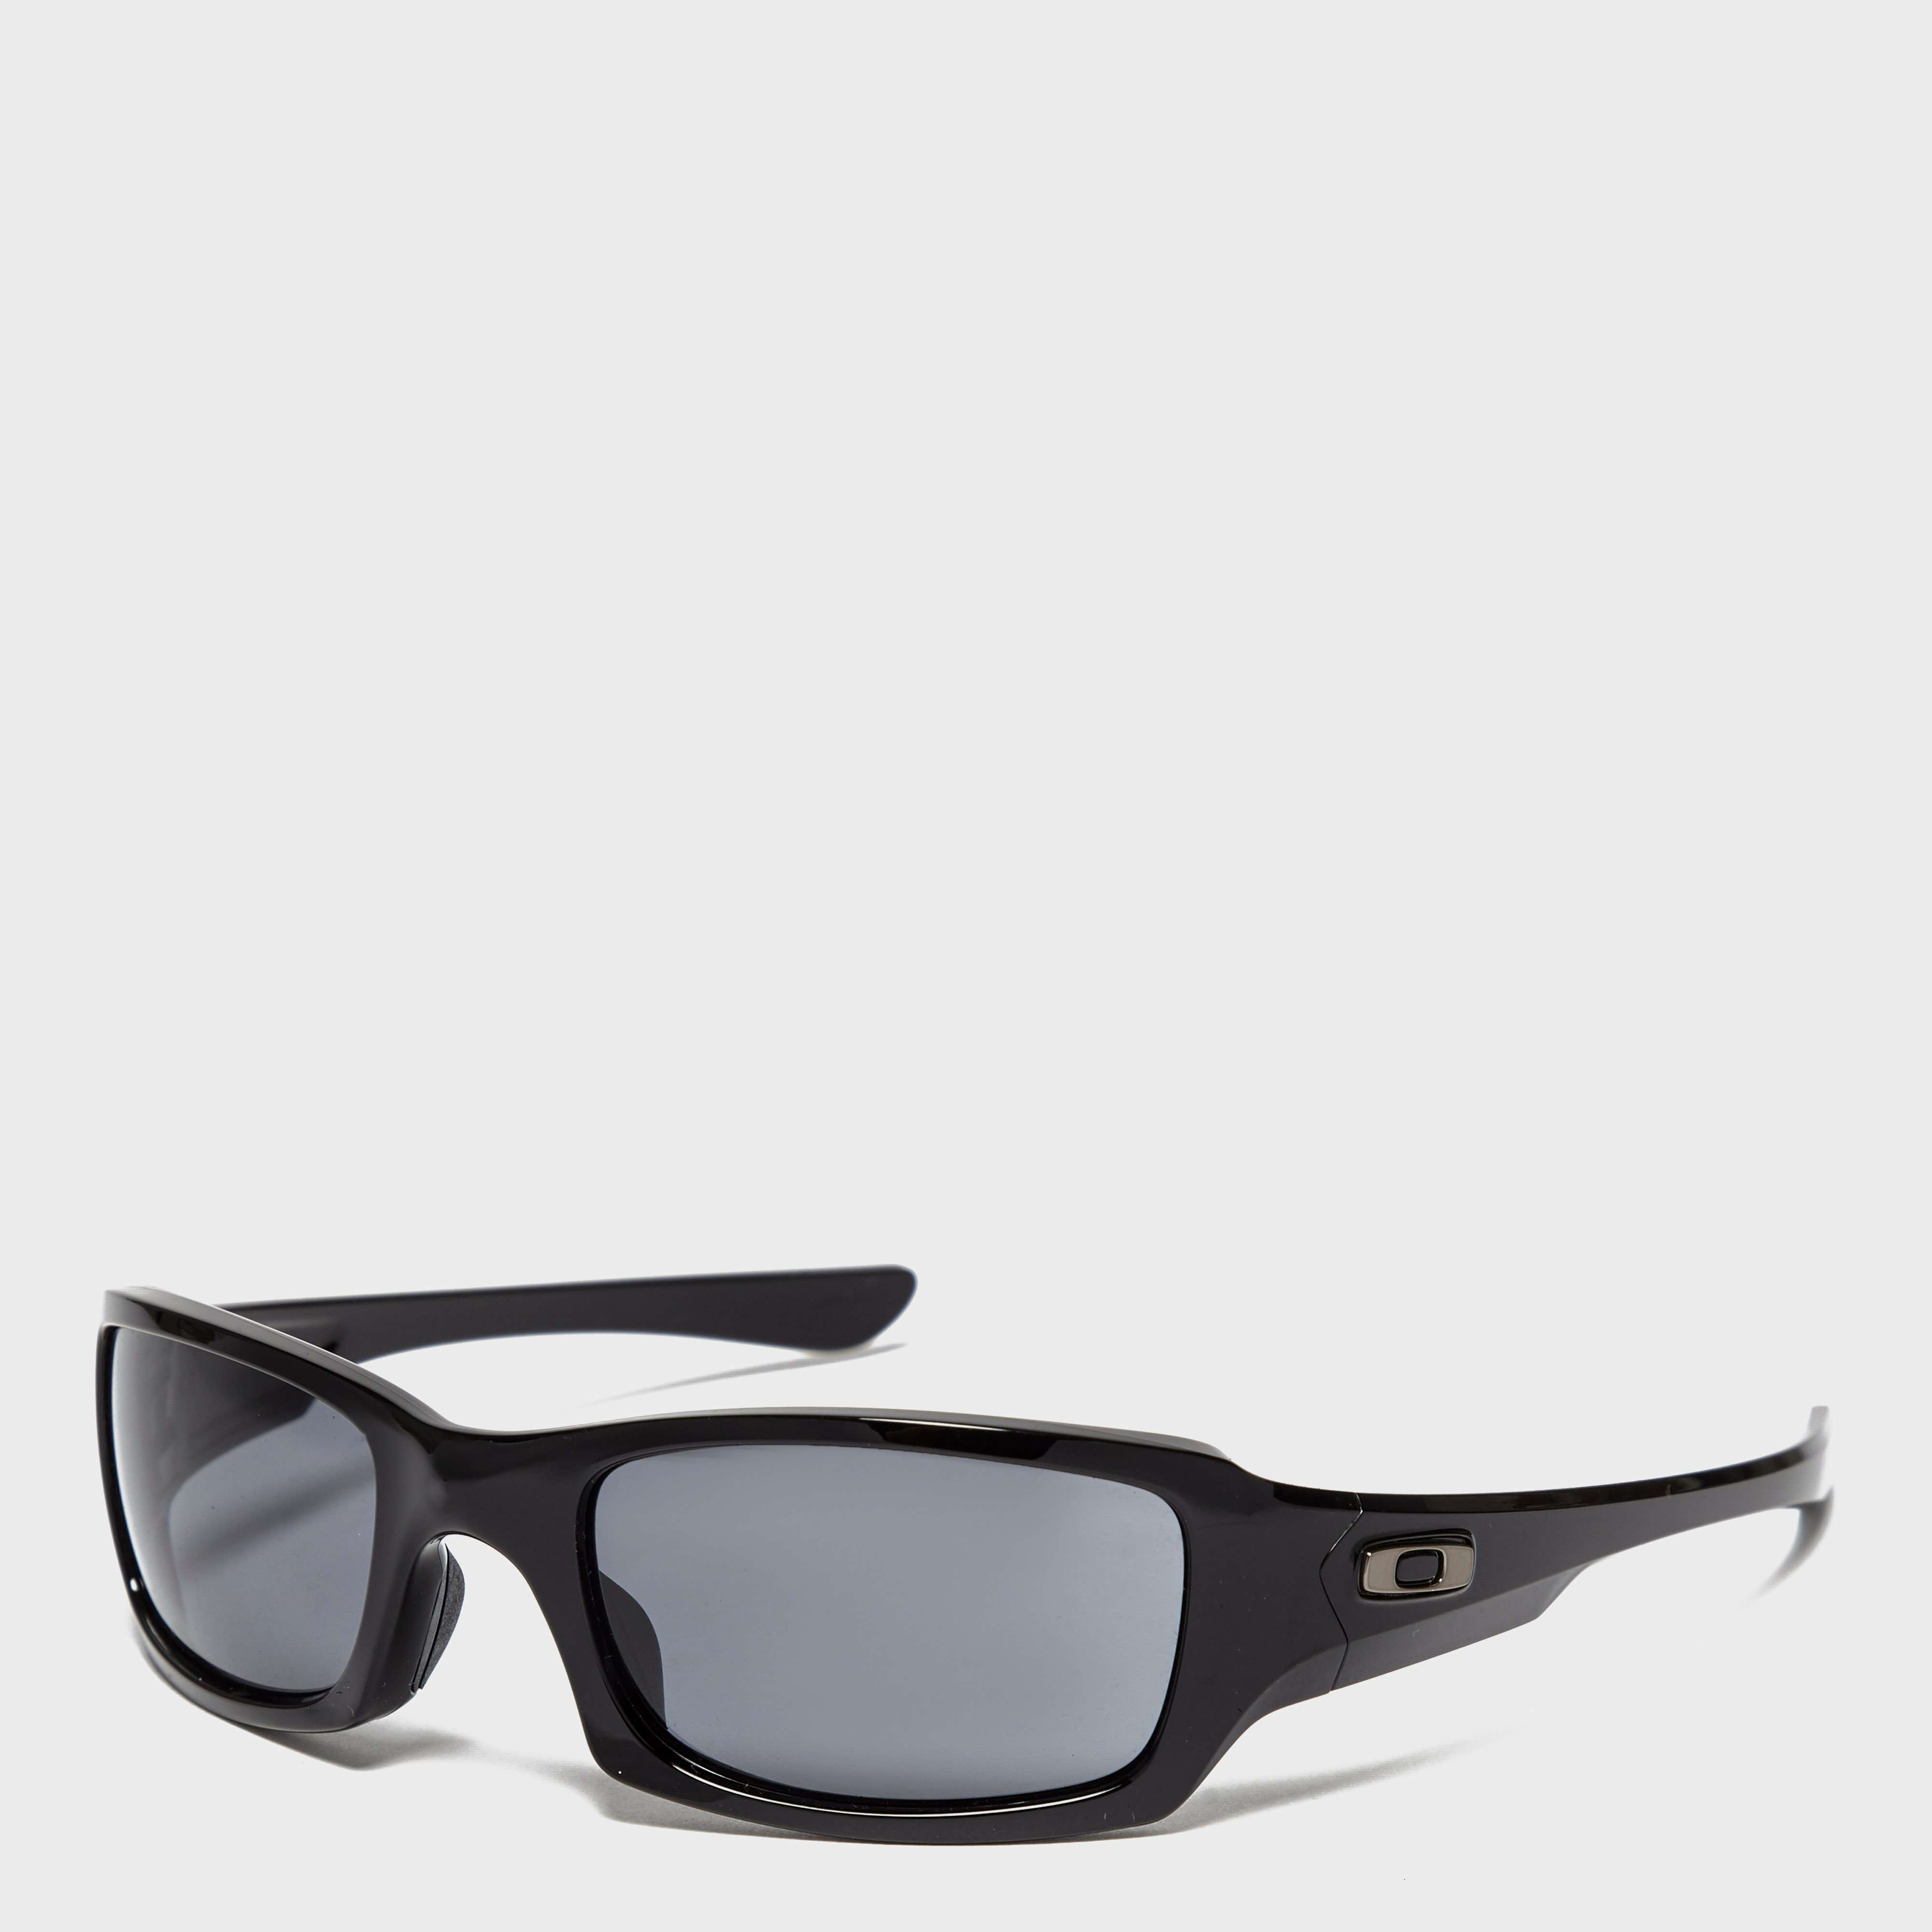 OAKLEY Fives Squared™ Polished Sunglasses